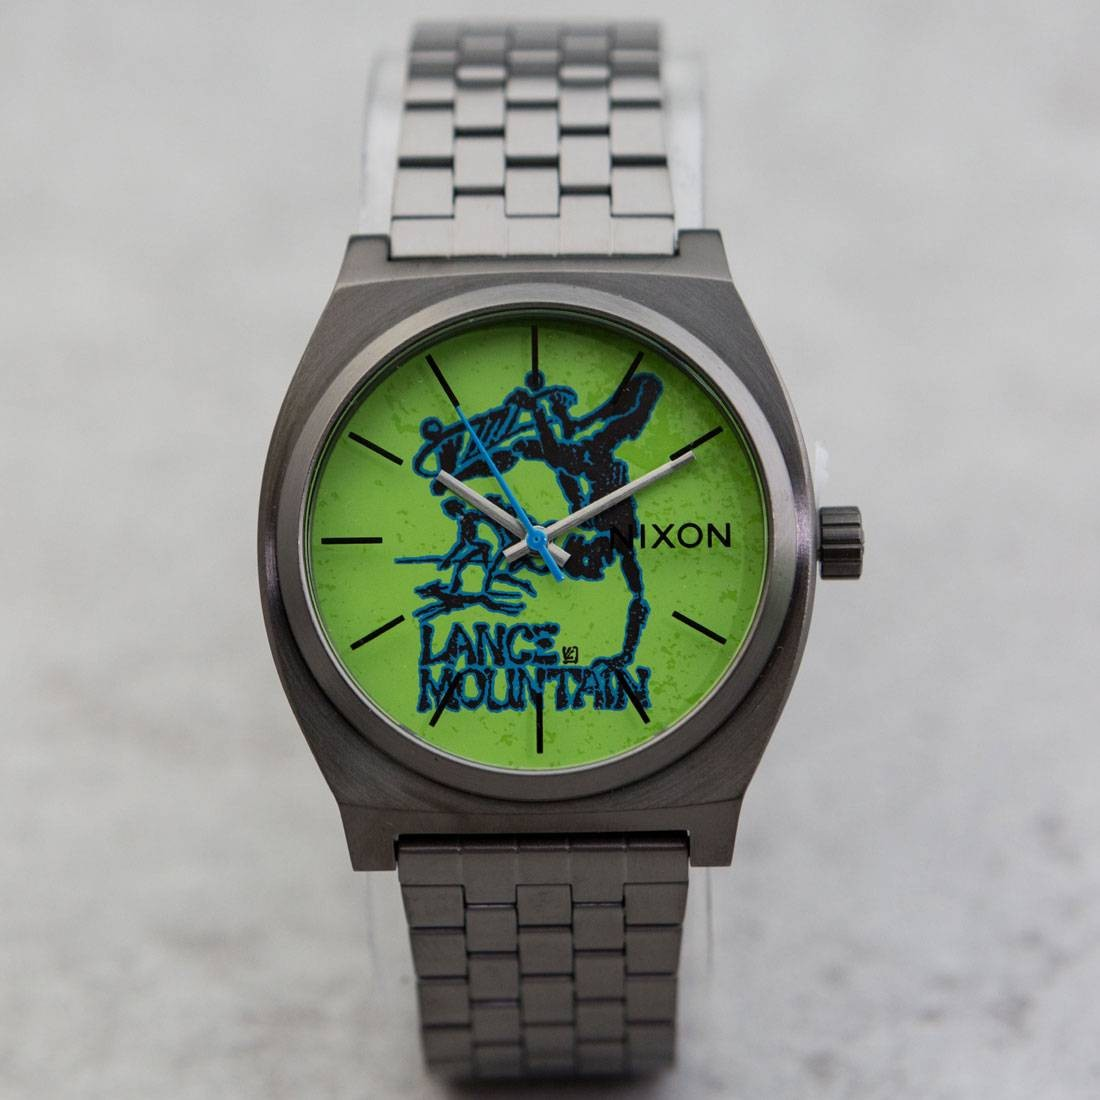 Nixon Time Teller Watch - Bones Brigade Lance Mountain (silver / gunmetal)